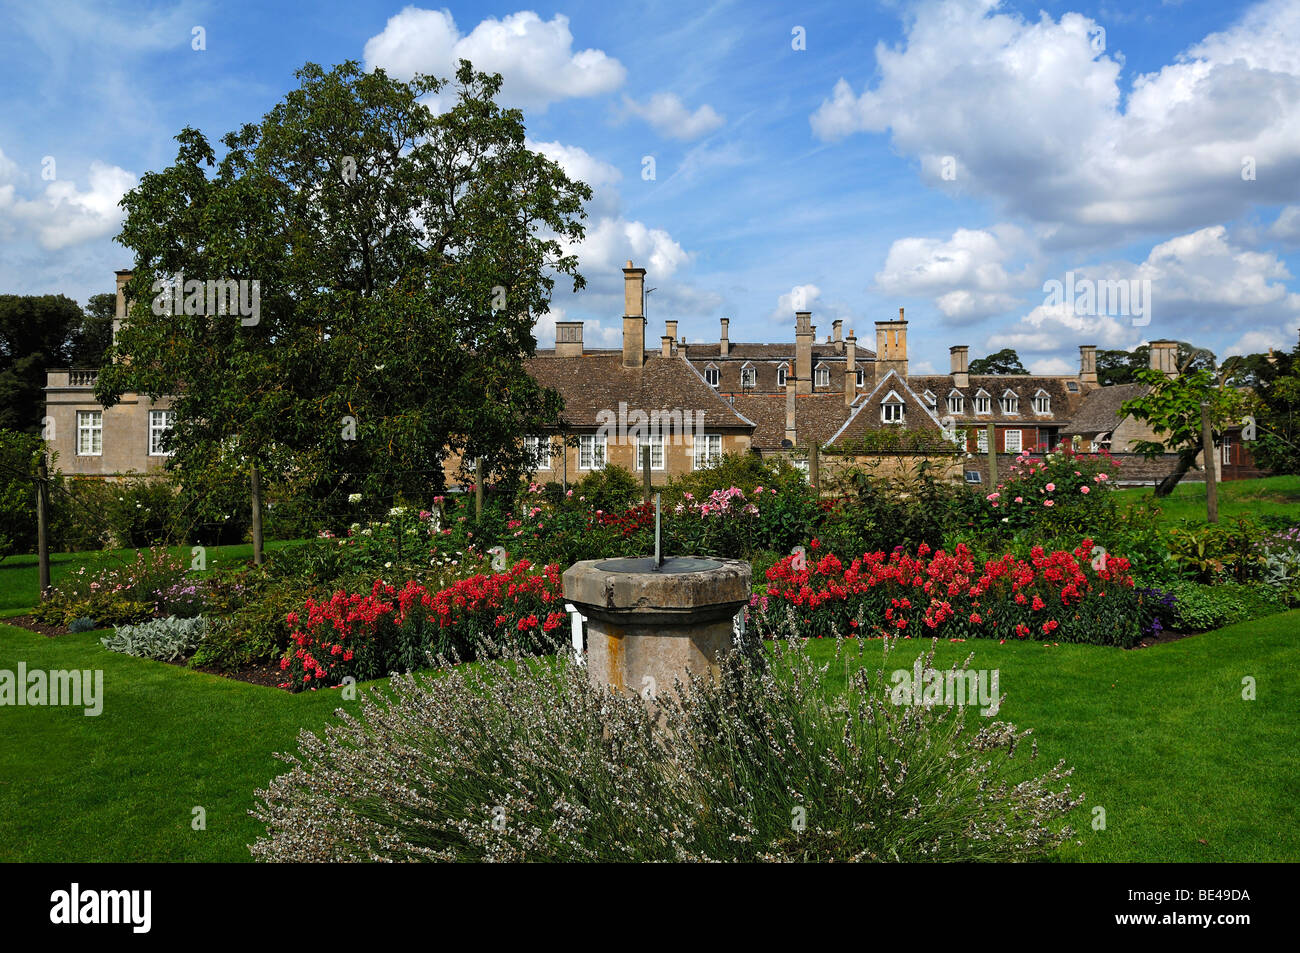 'Boughton House', in the front the rose garden with a sundial, Geddington, Kettering, Northamptonshire, - Stock Image